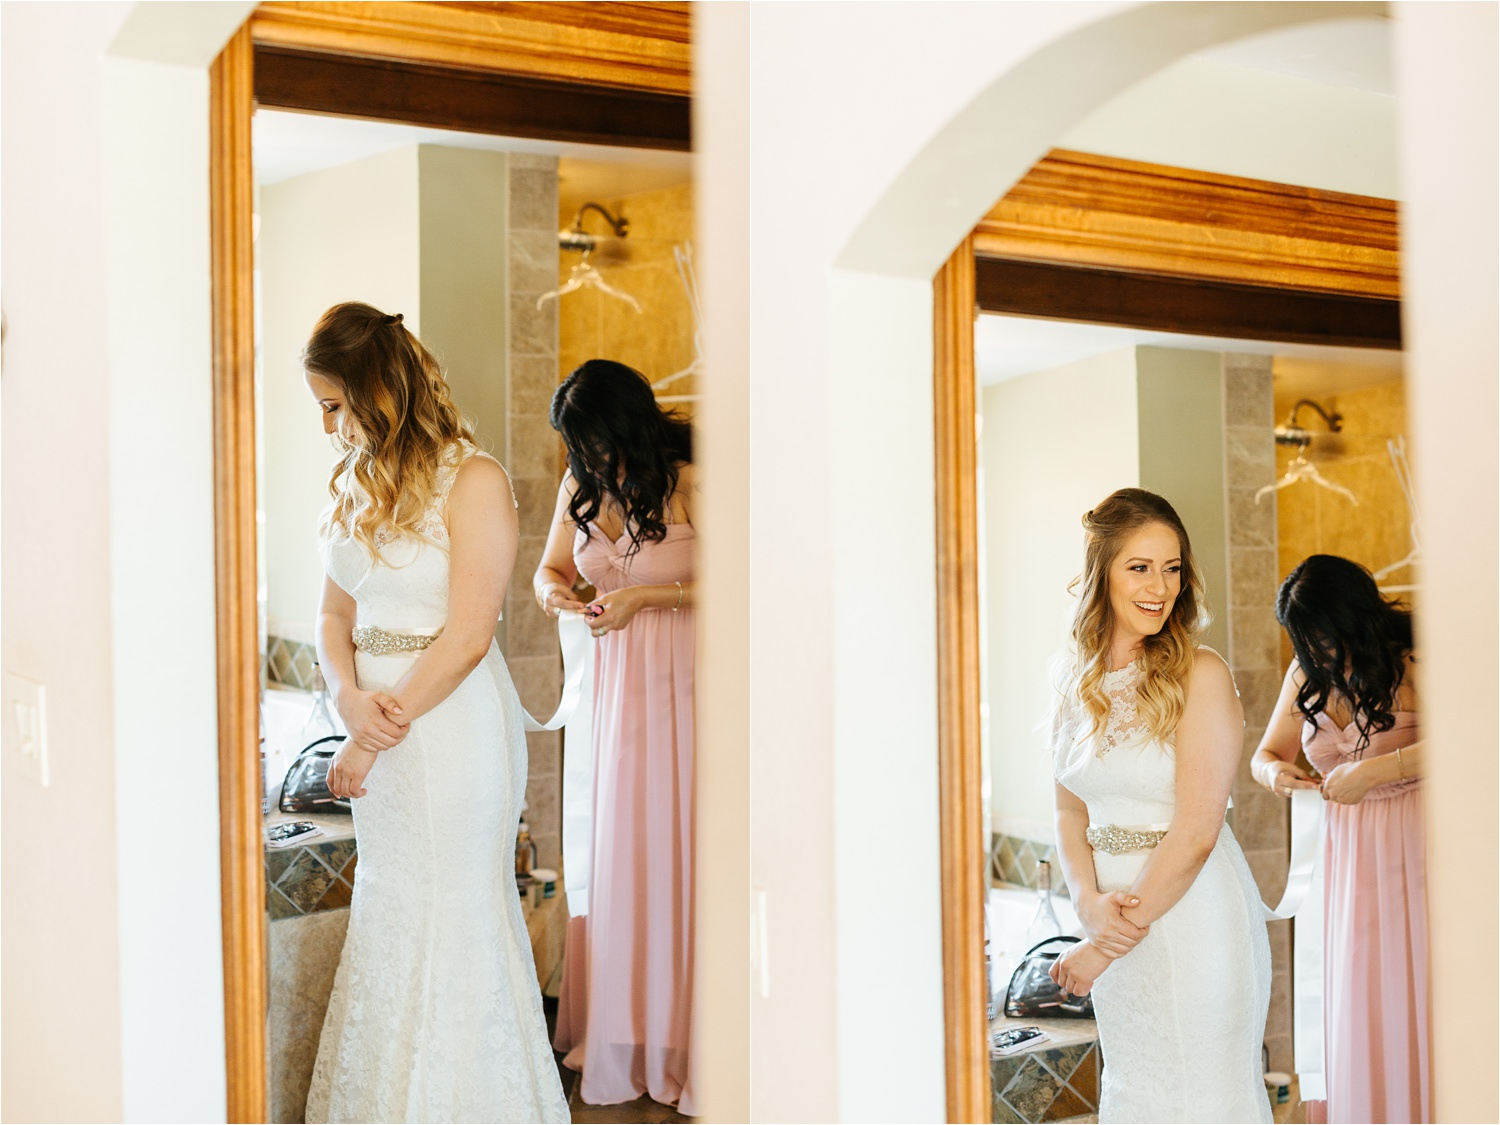 Bride getting ready to walk down the aisle - https://brittneyhannonphotography.com